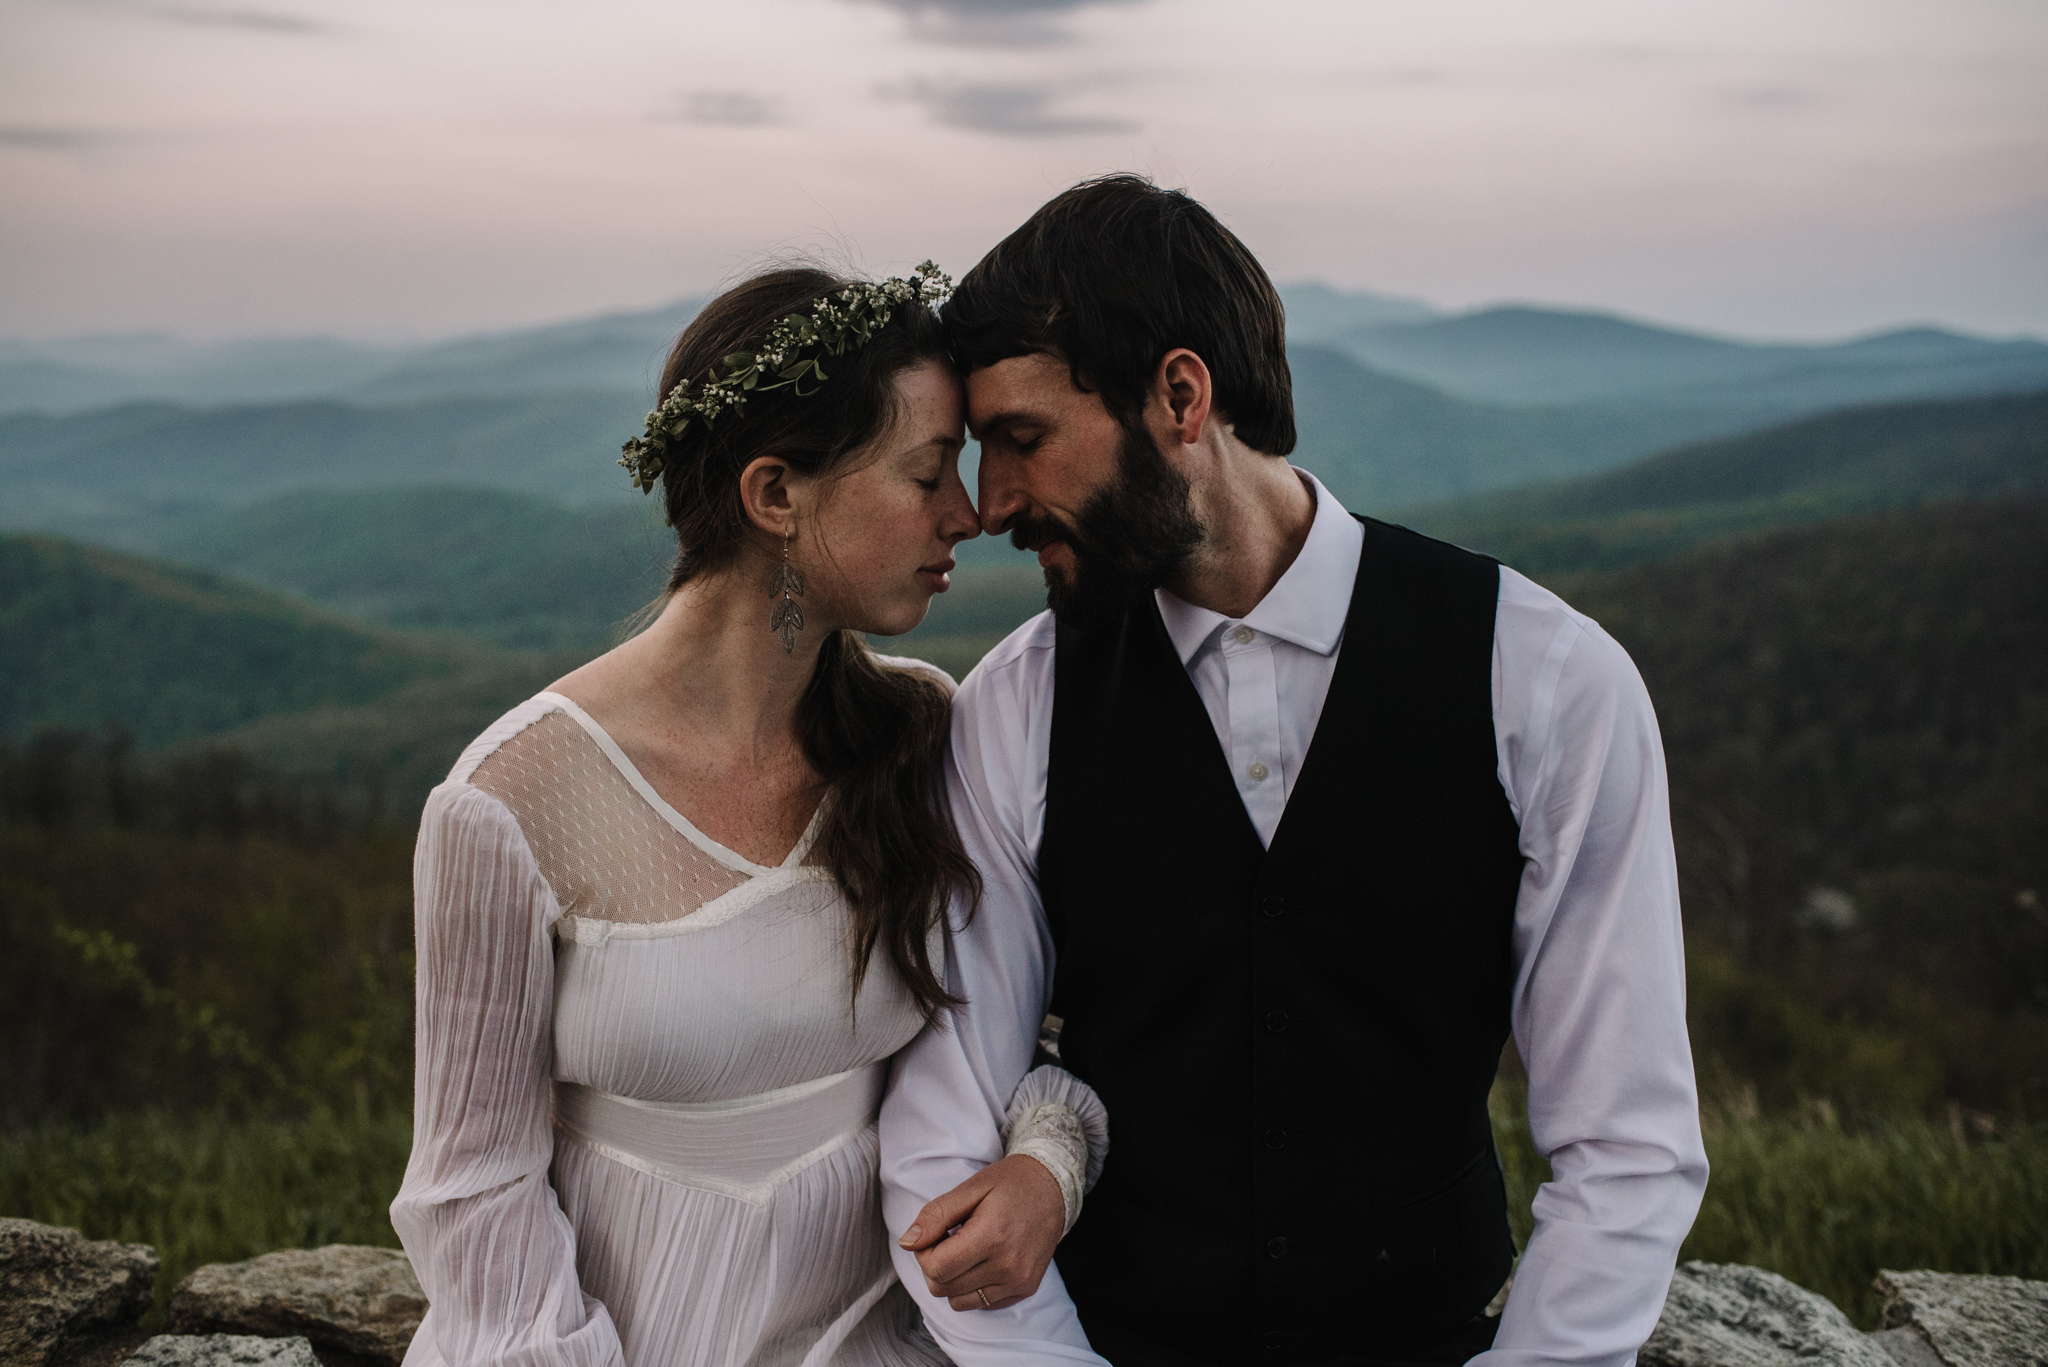 Shenandoah National Park Elopement Wedding Photographer and Planner_164.jpg